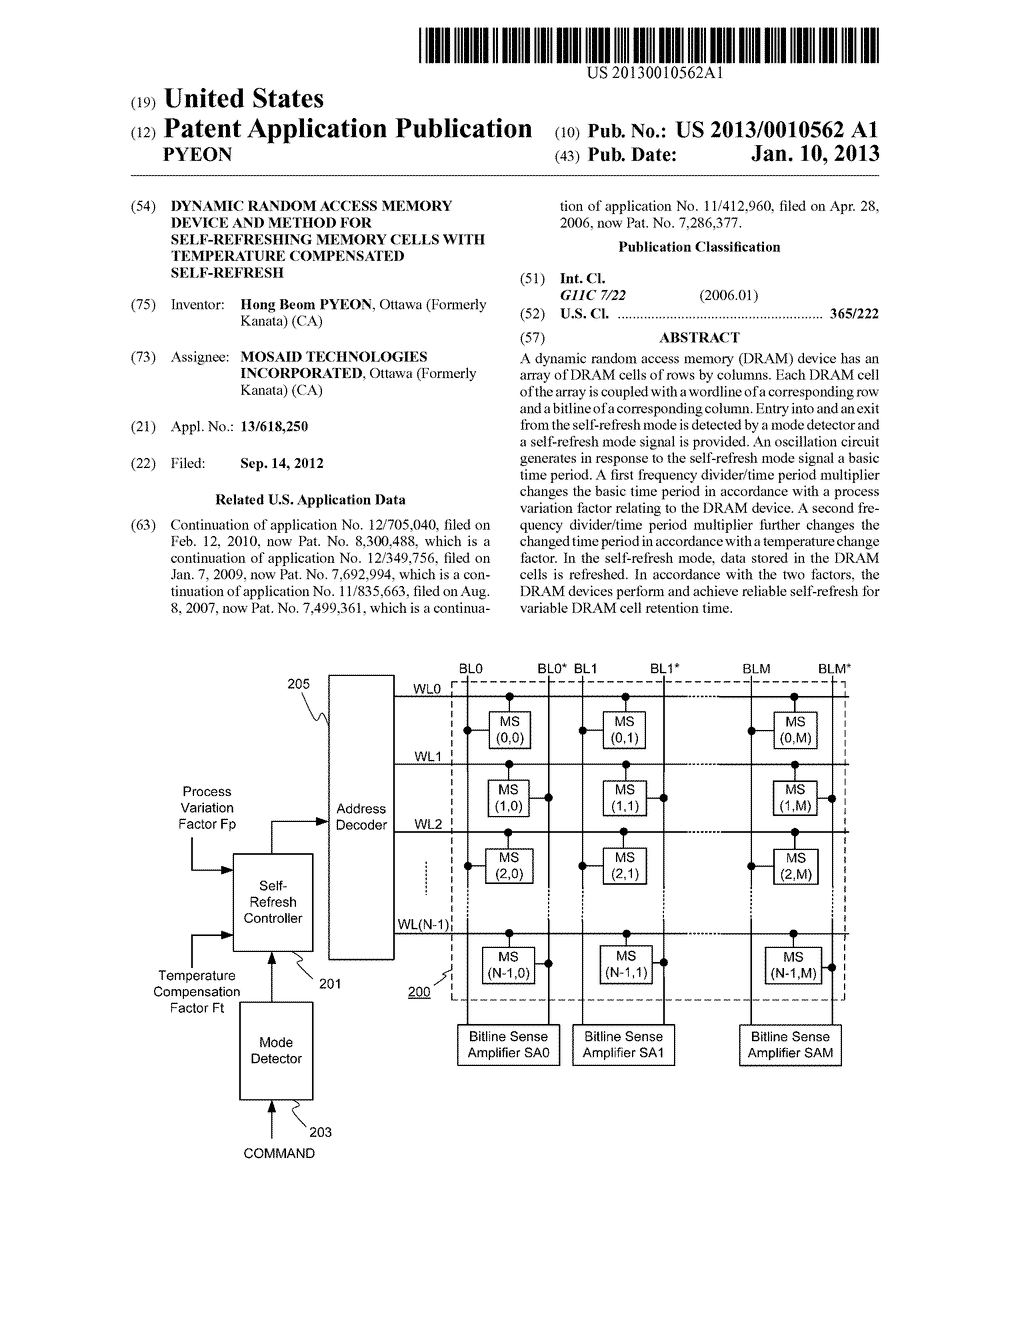 DYNAMIC RANDOM ACCESS MEMORY DEVICE AND METHOD FOR SELF-REFRESHING MEMORY     CELLS WITH TEMPERATURE COMPENSATED SELF-REFRESH - diagram, schematic, and image 01